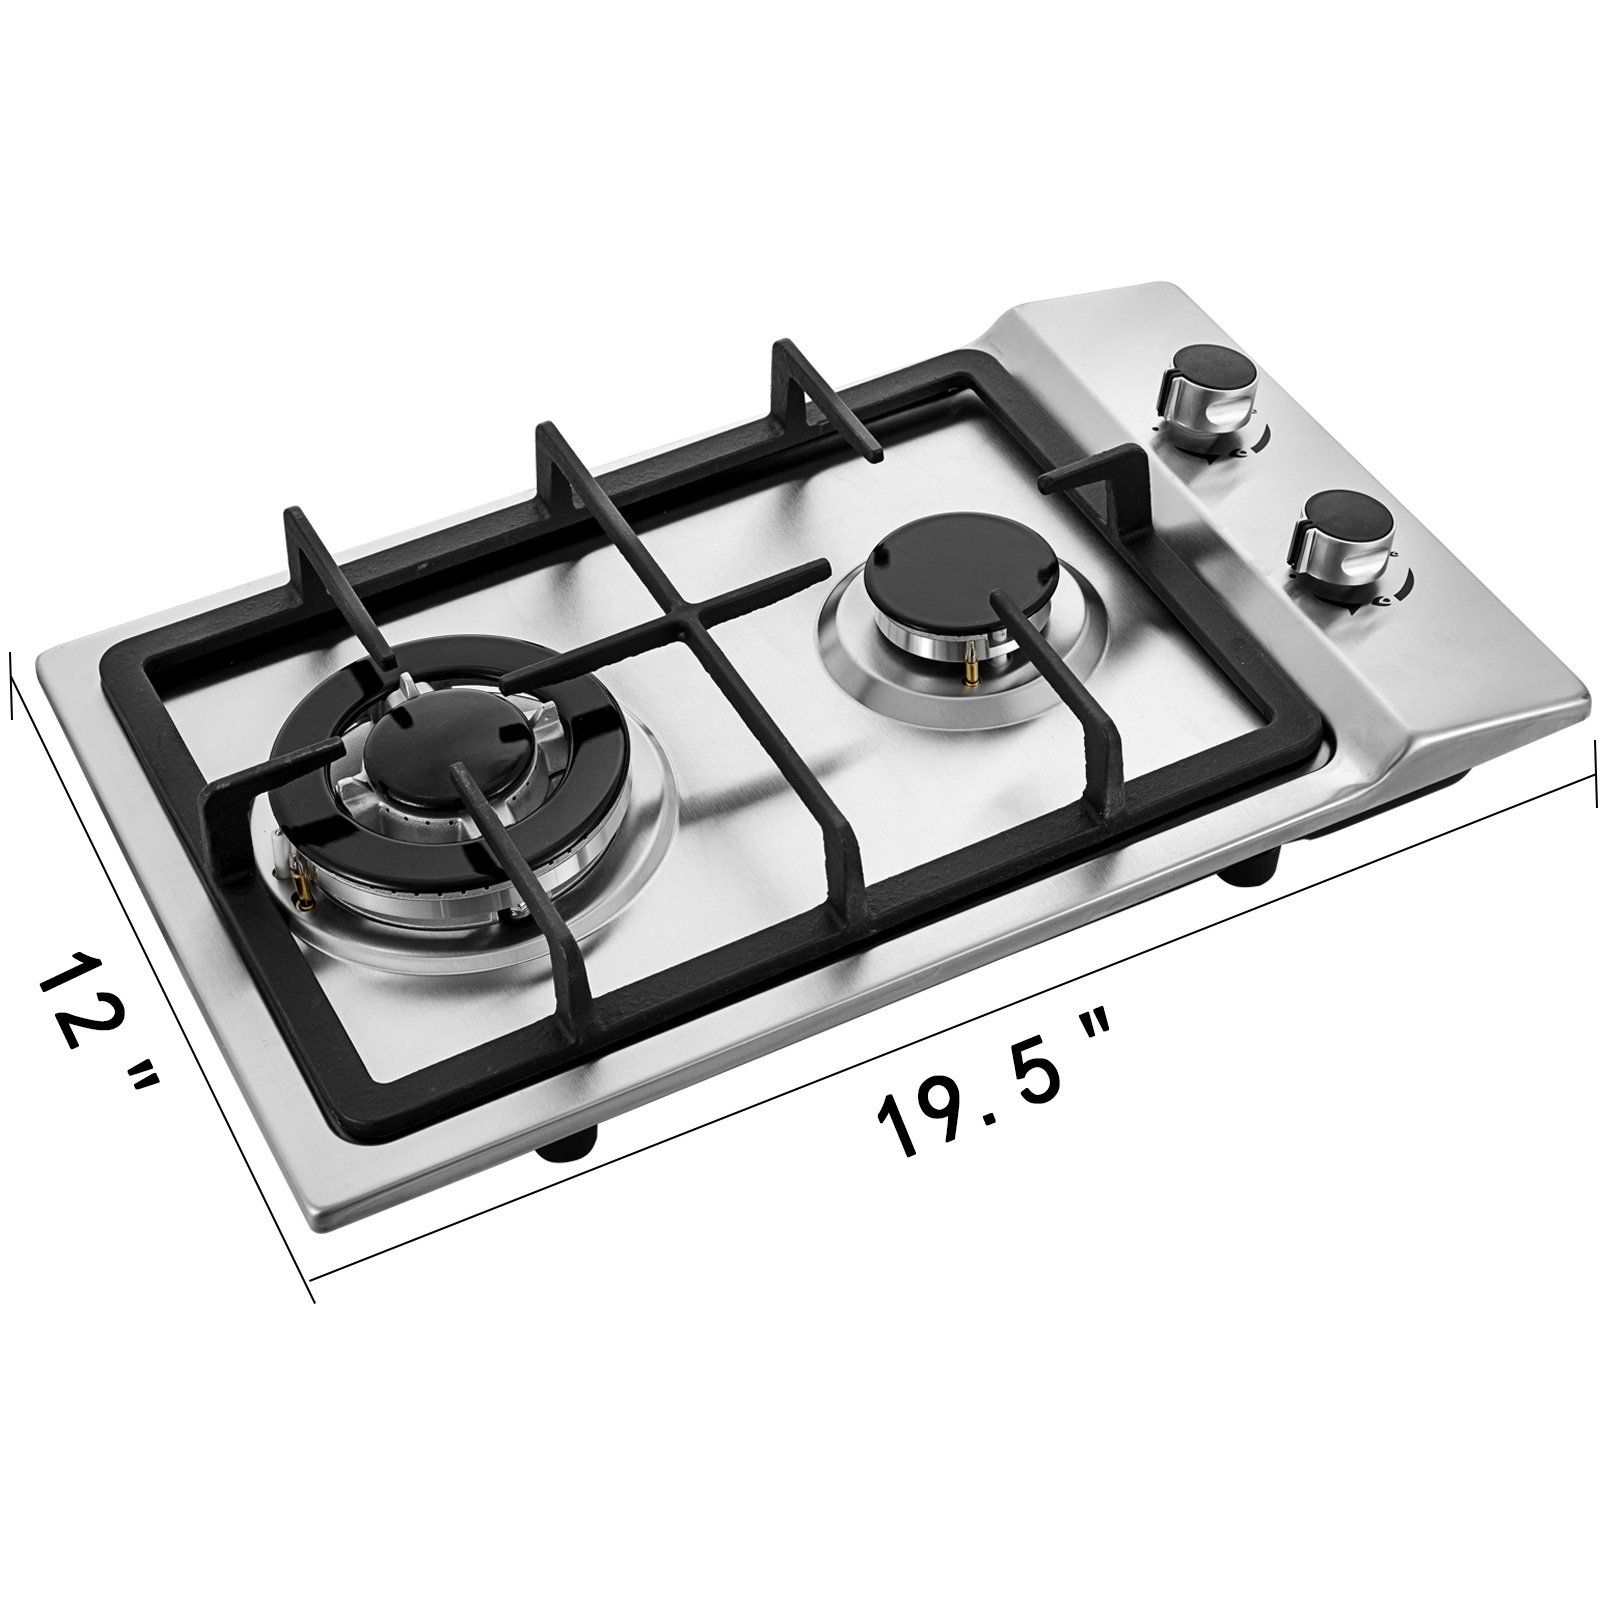 12 2 Burners Gas Cooktop Stainless Steel Iron Grates Double Oven Dura High Quality Equipment And Tools With Unbeatable Prices In 2020 Gas Cooktop Gas Stove Cooktop